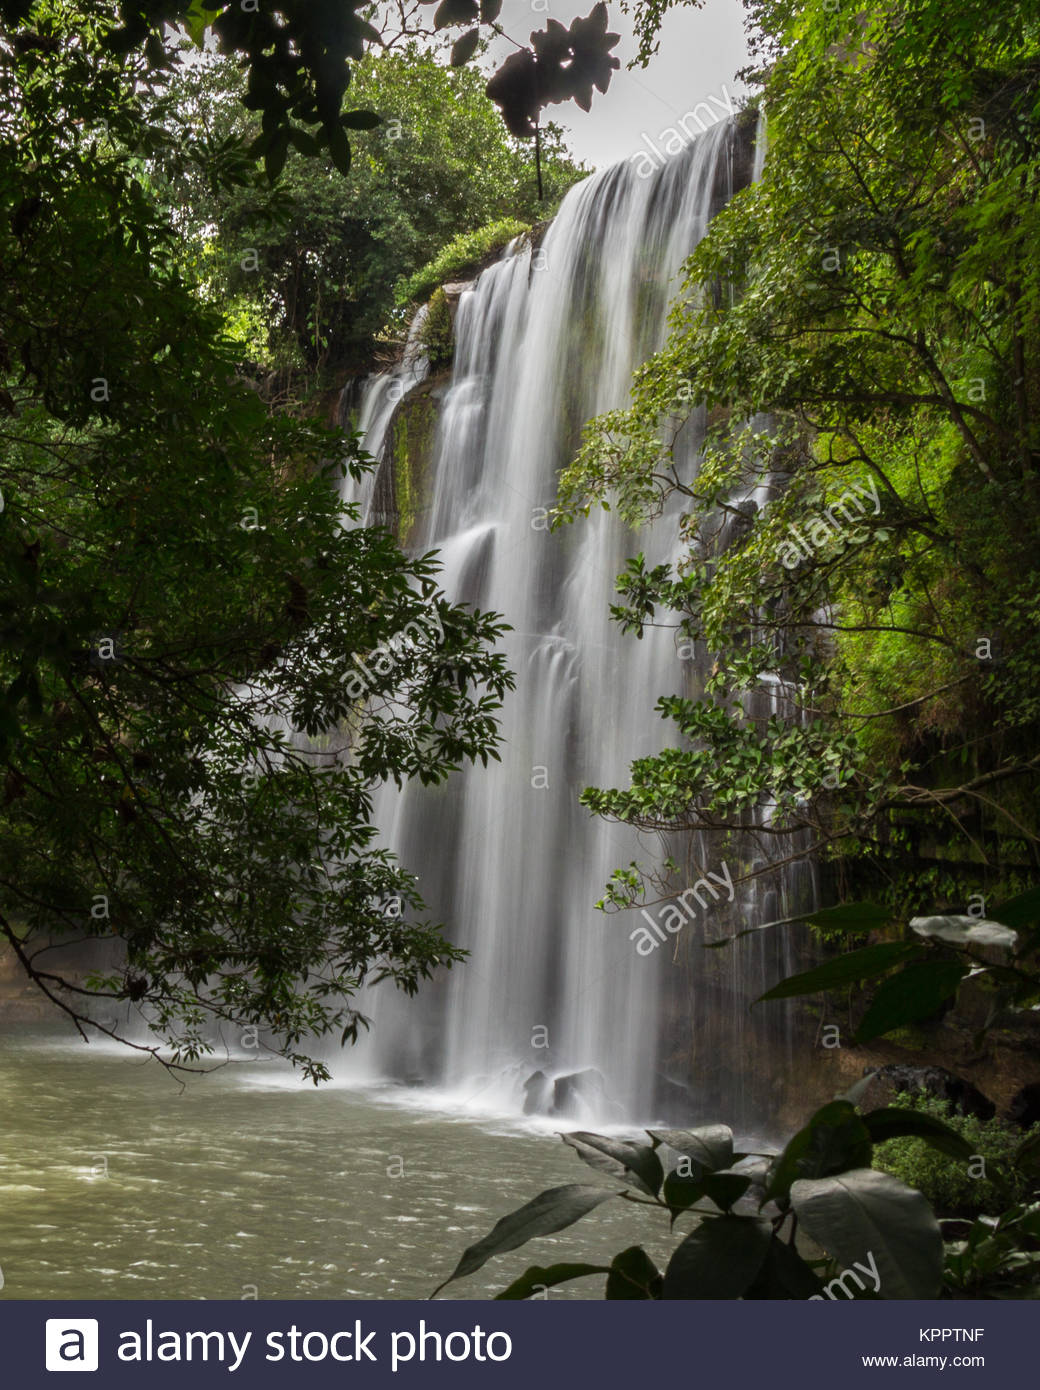 Catarata Llano de Cortés, Llano de Cortés Waterfall and forest - Stock Image